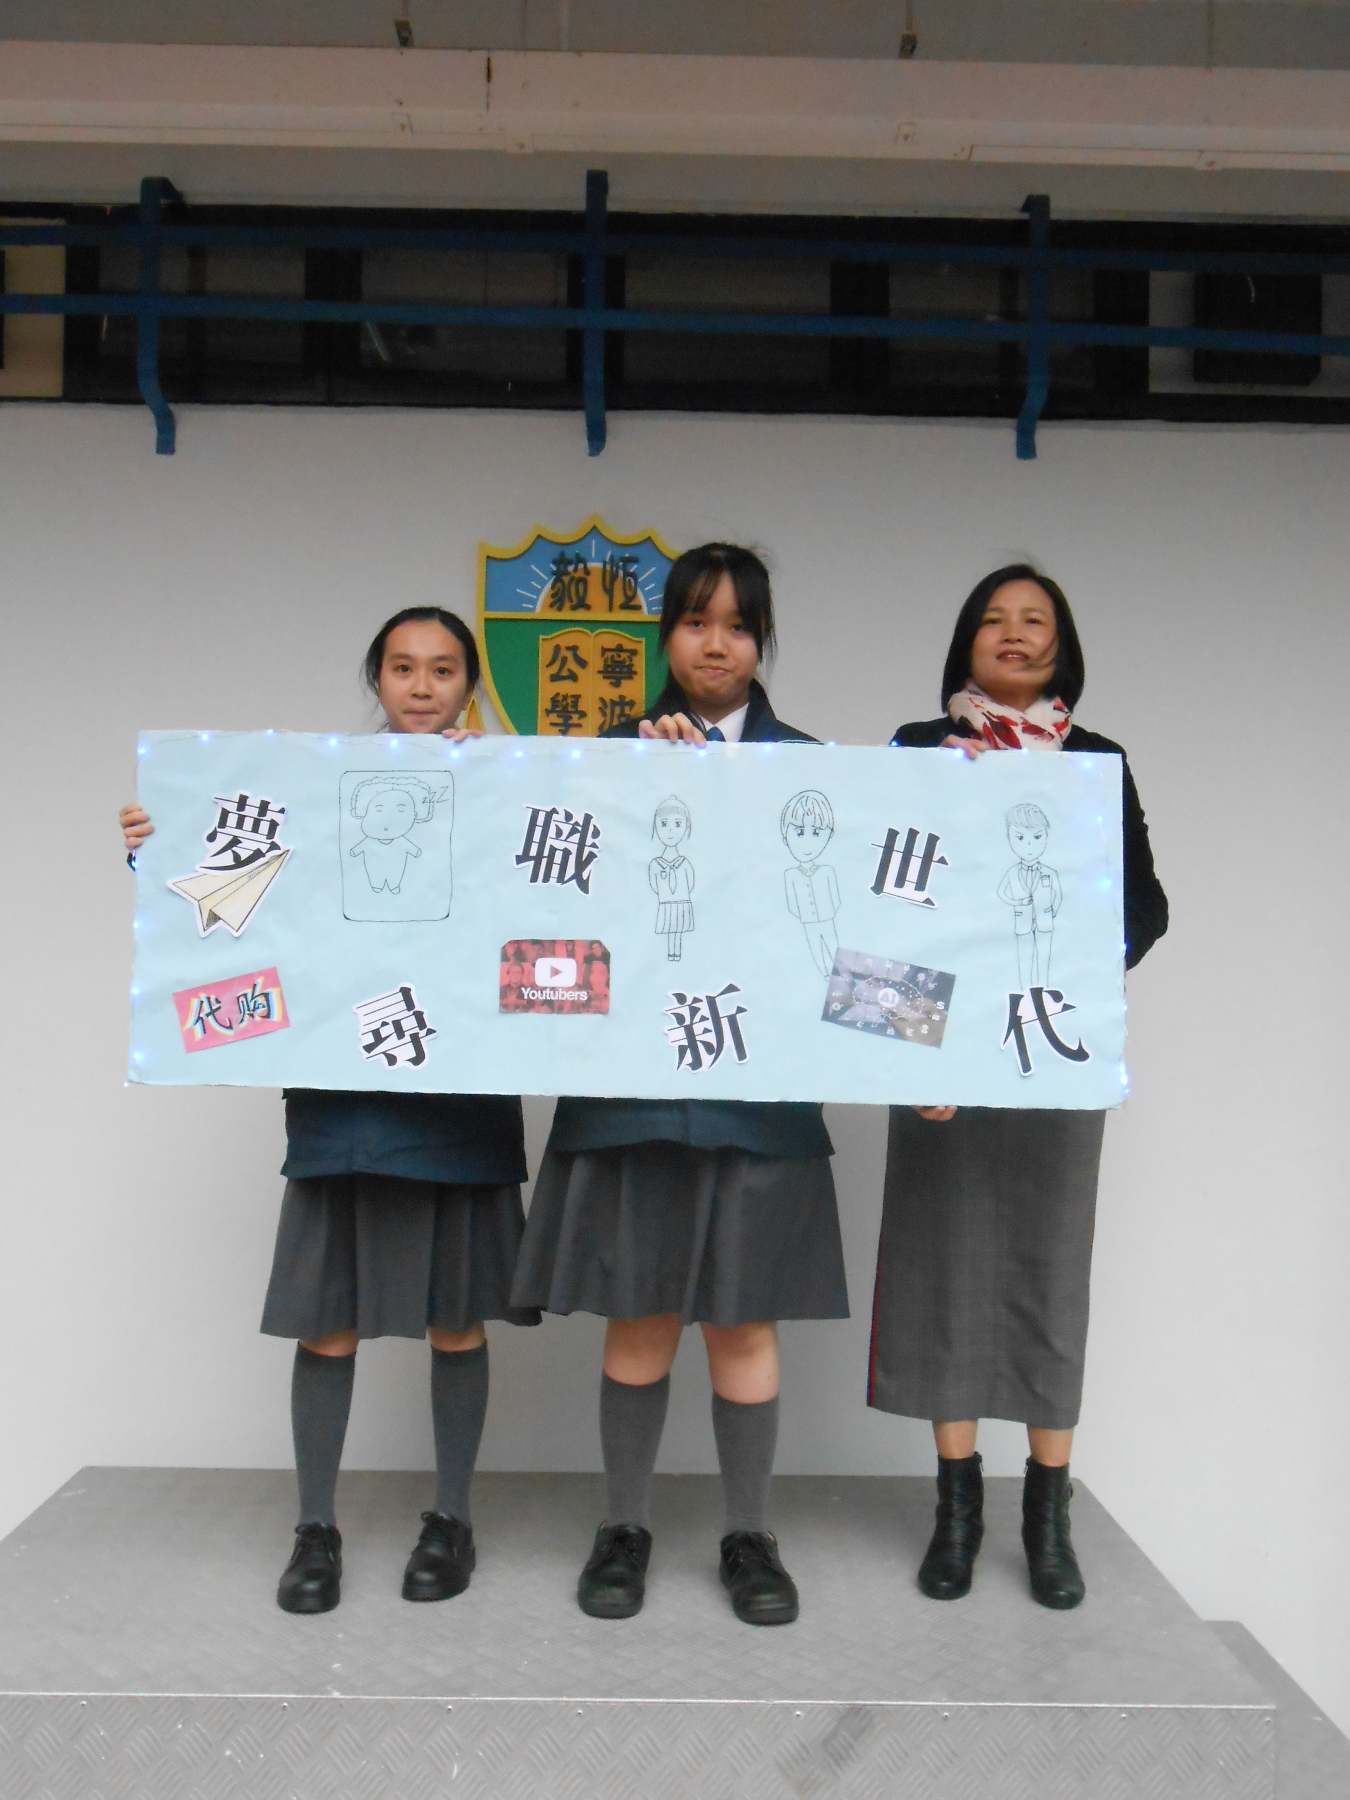 http://npc.edu.hk/sites/default/files/dscn8939.jpg